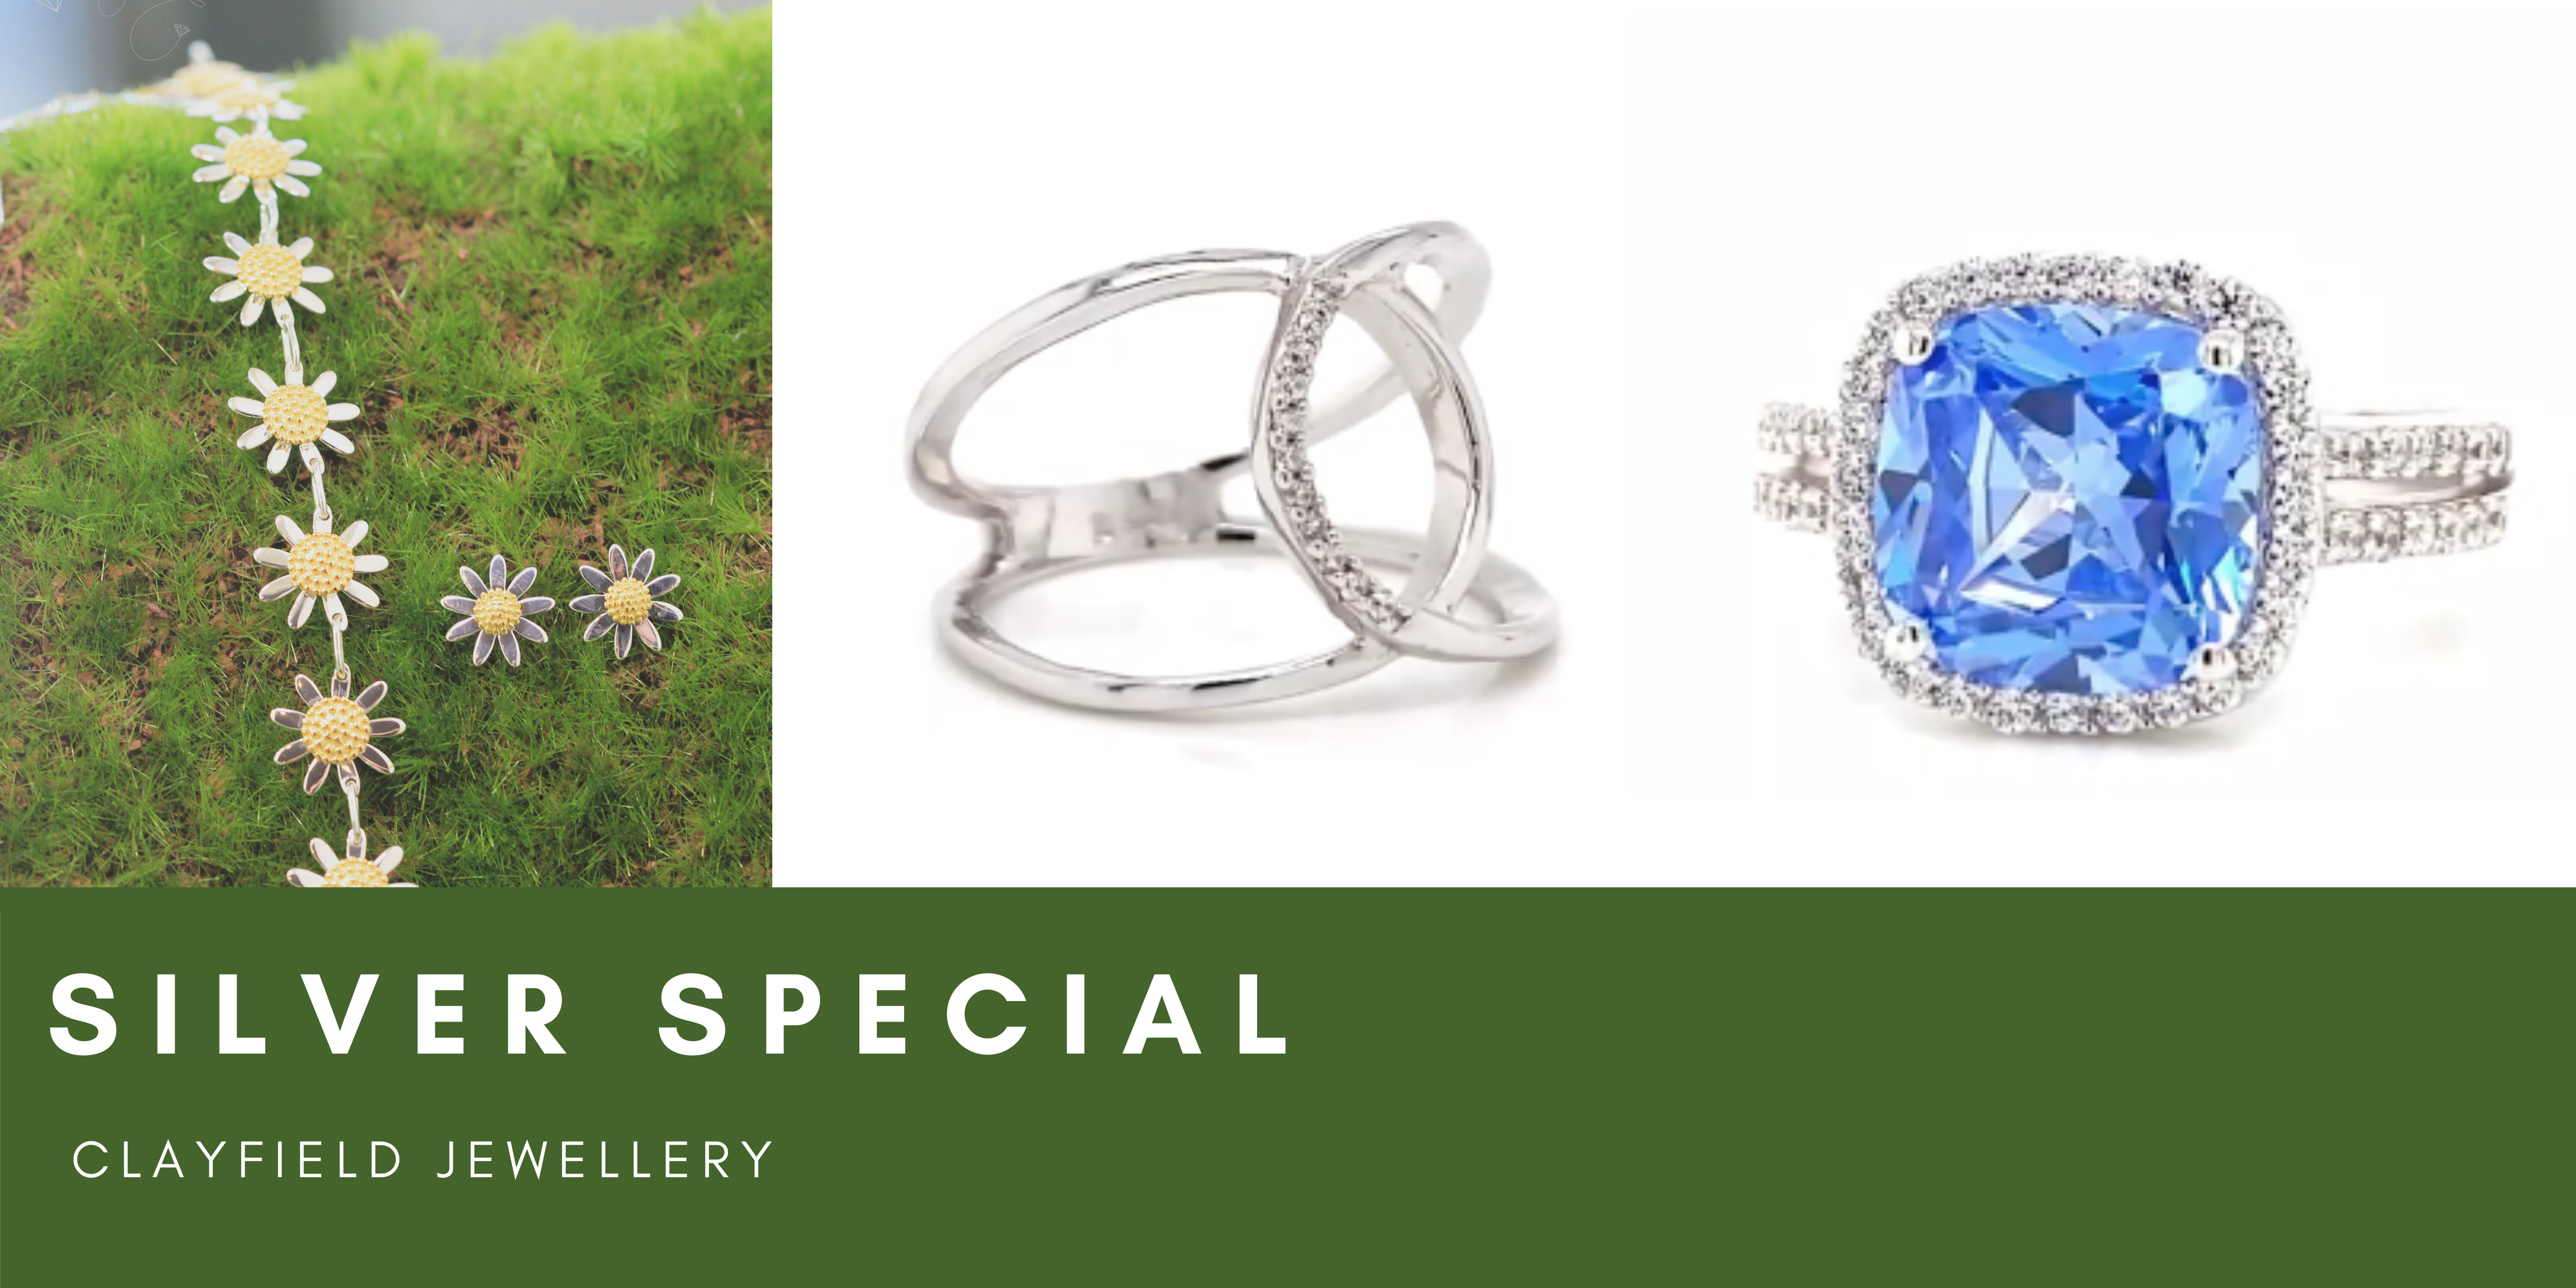 clayfield jewellery 50% off sterling silver